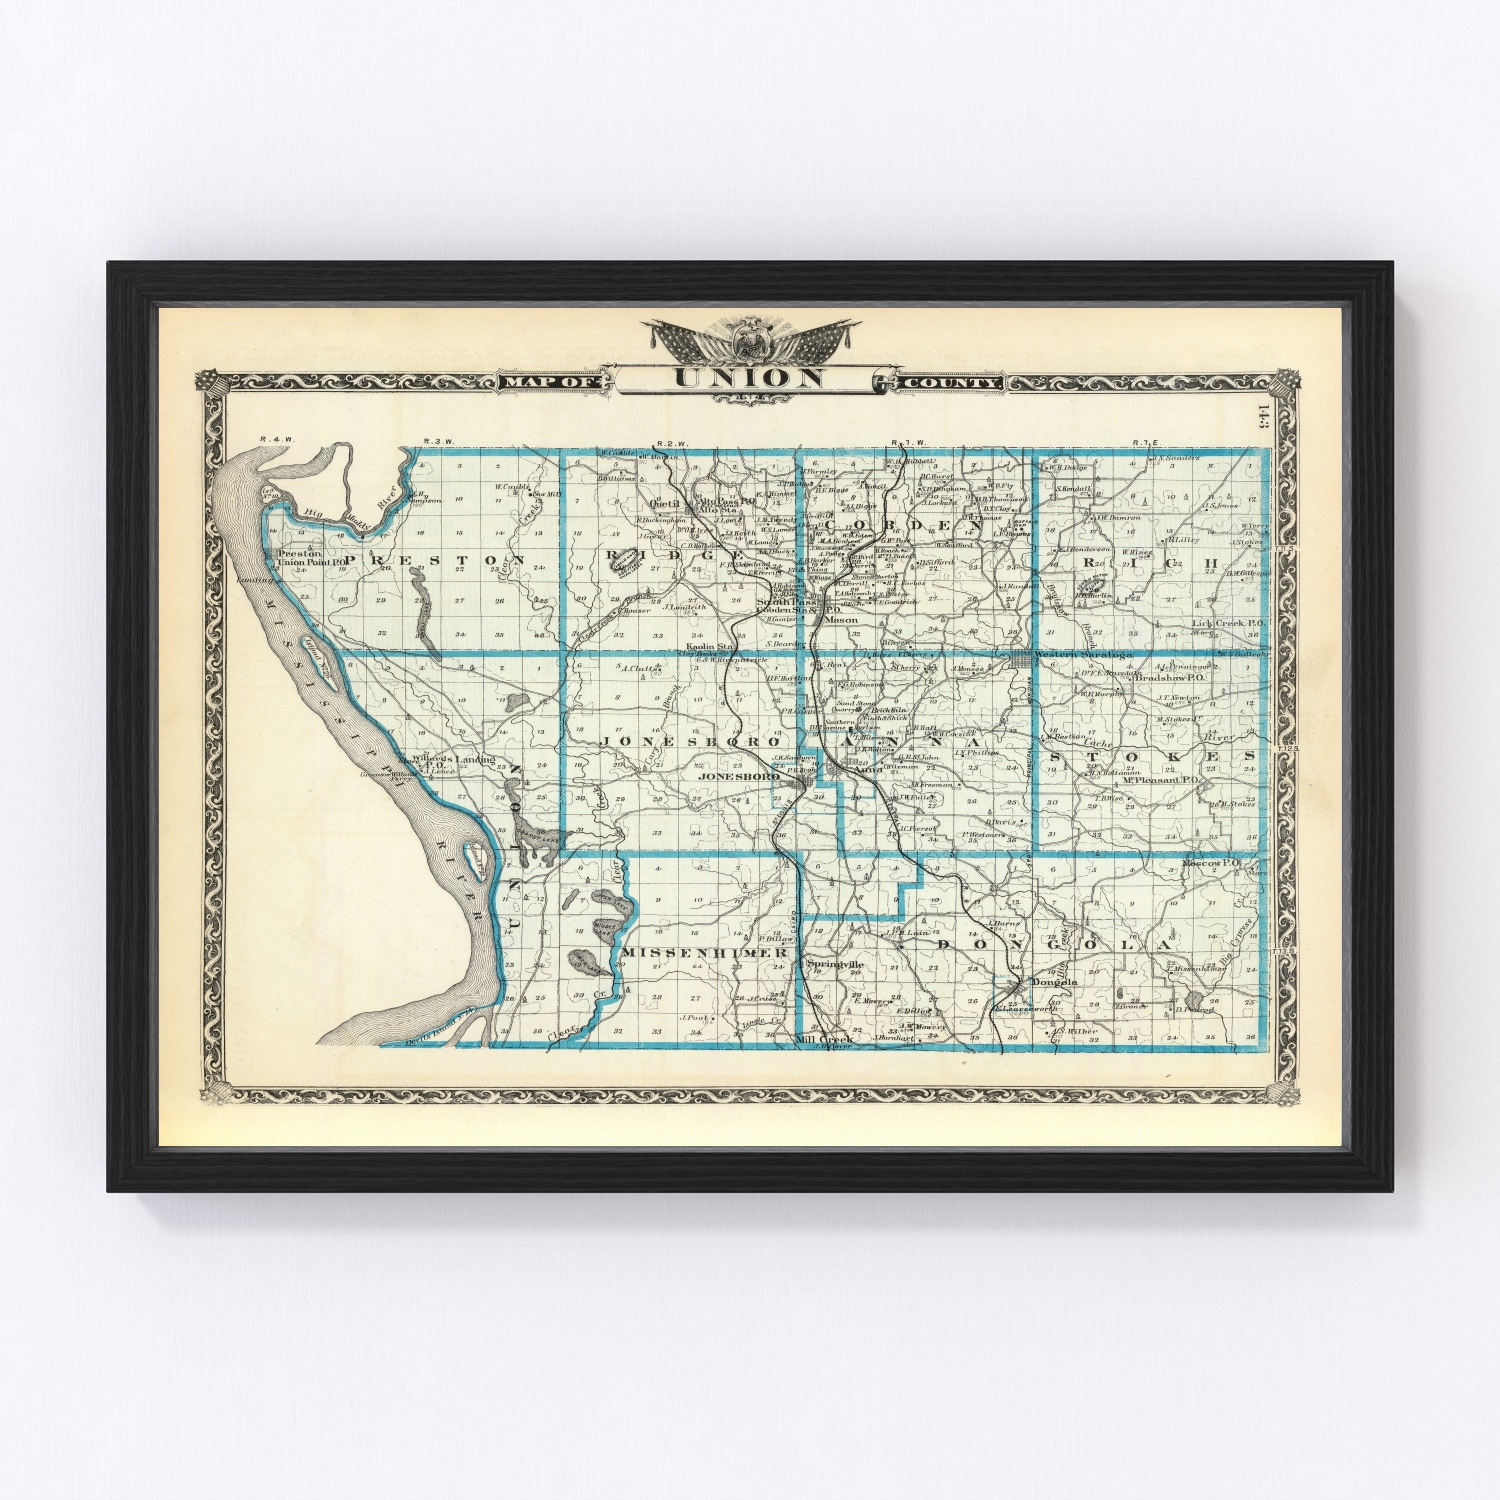 Vintage Map of Union County Illinois, 1876